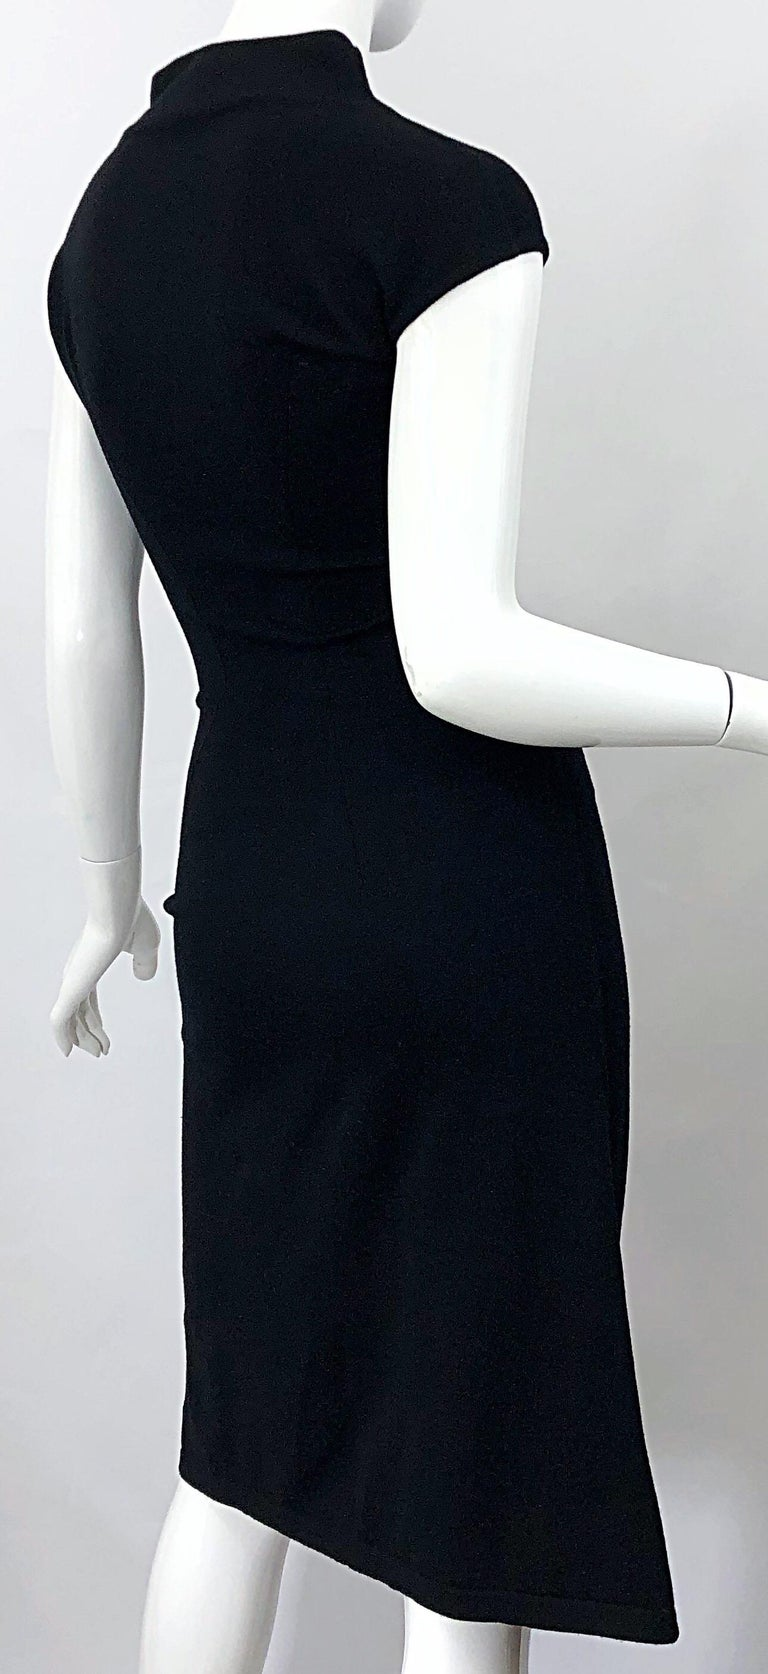 Vintage Azzedine Alaia 1980s Black Lightweight Wool Cap Sleeve Bodycon 80s Dress For Sale 6